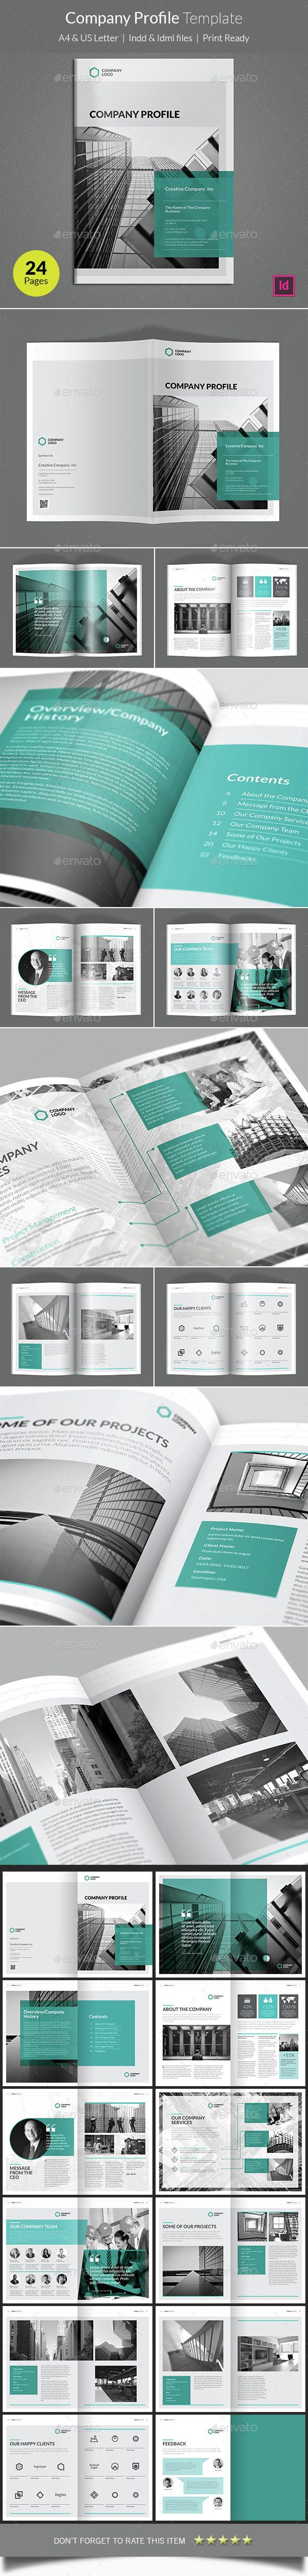 Company Profile Brochure Template InDesign INDD. Download